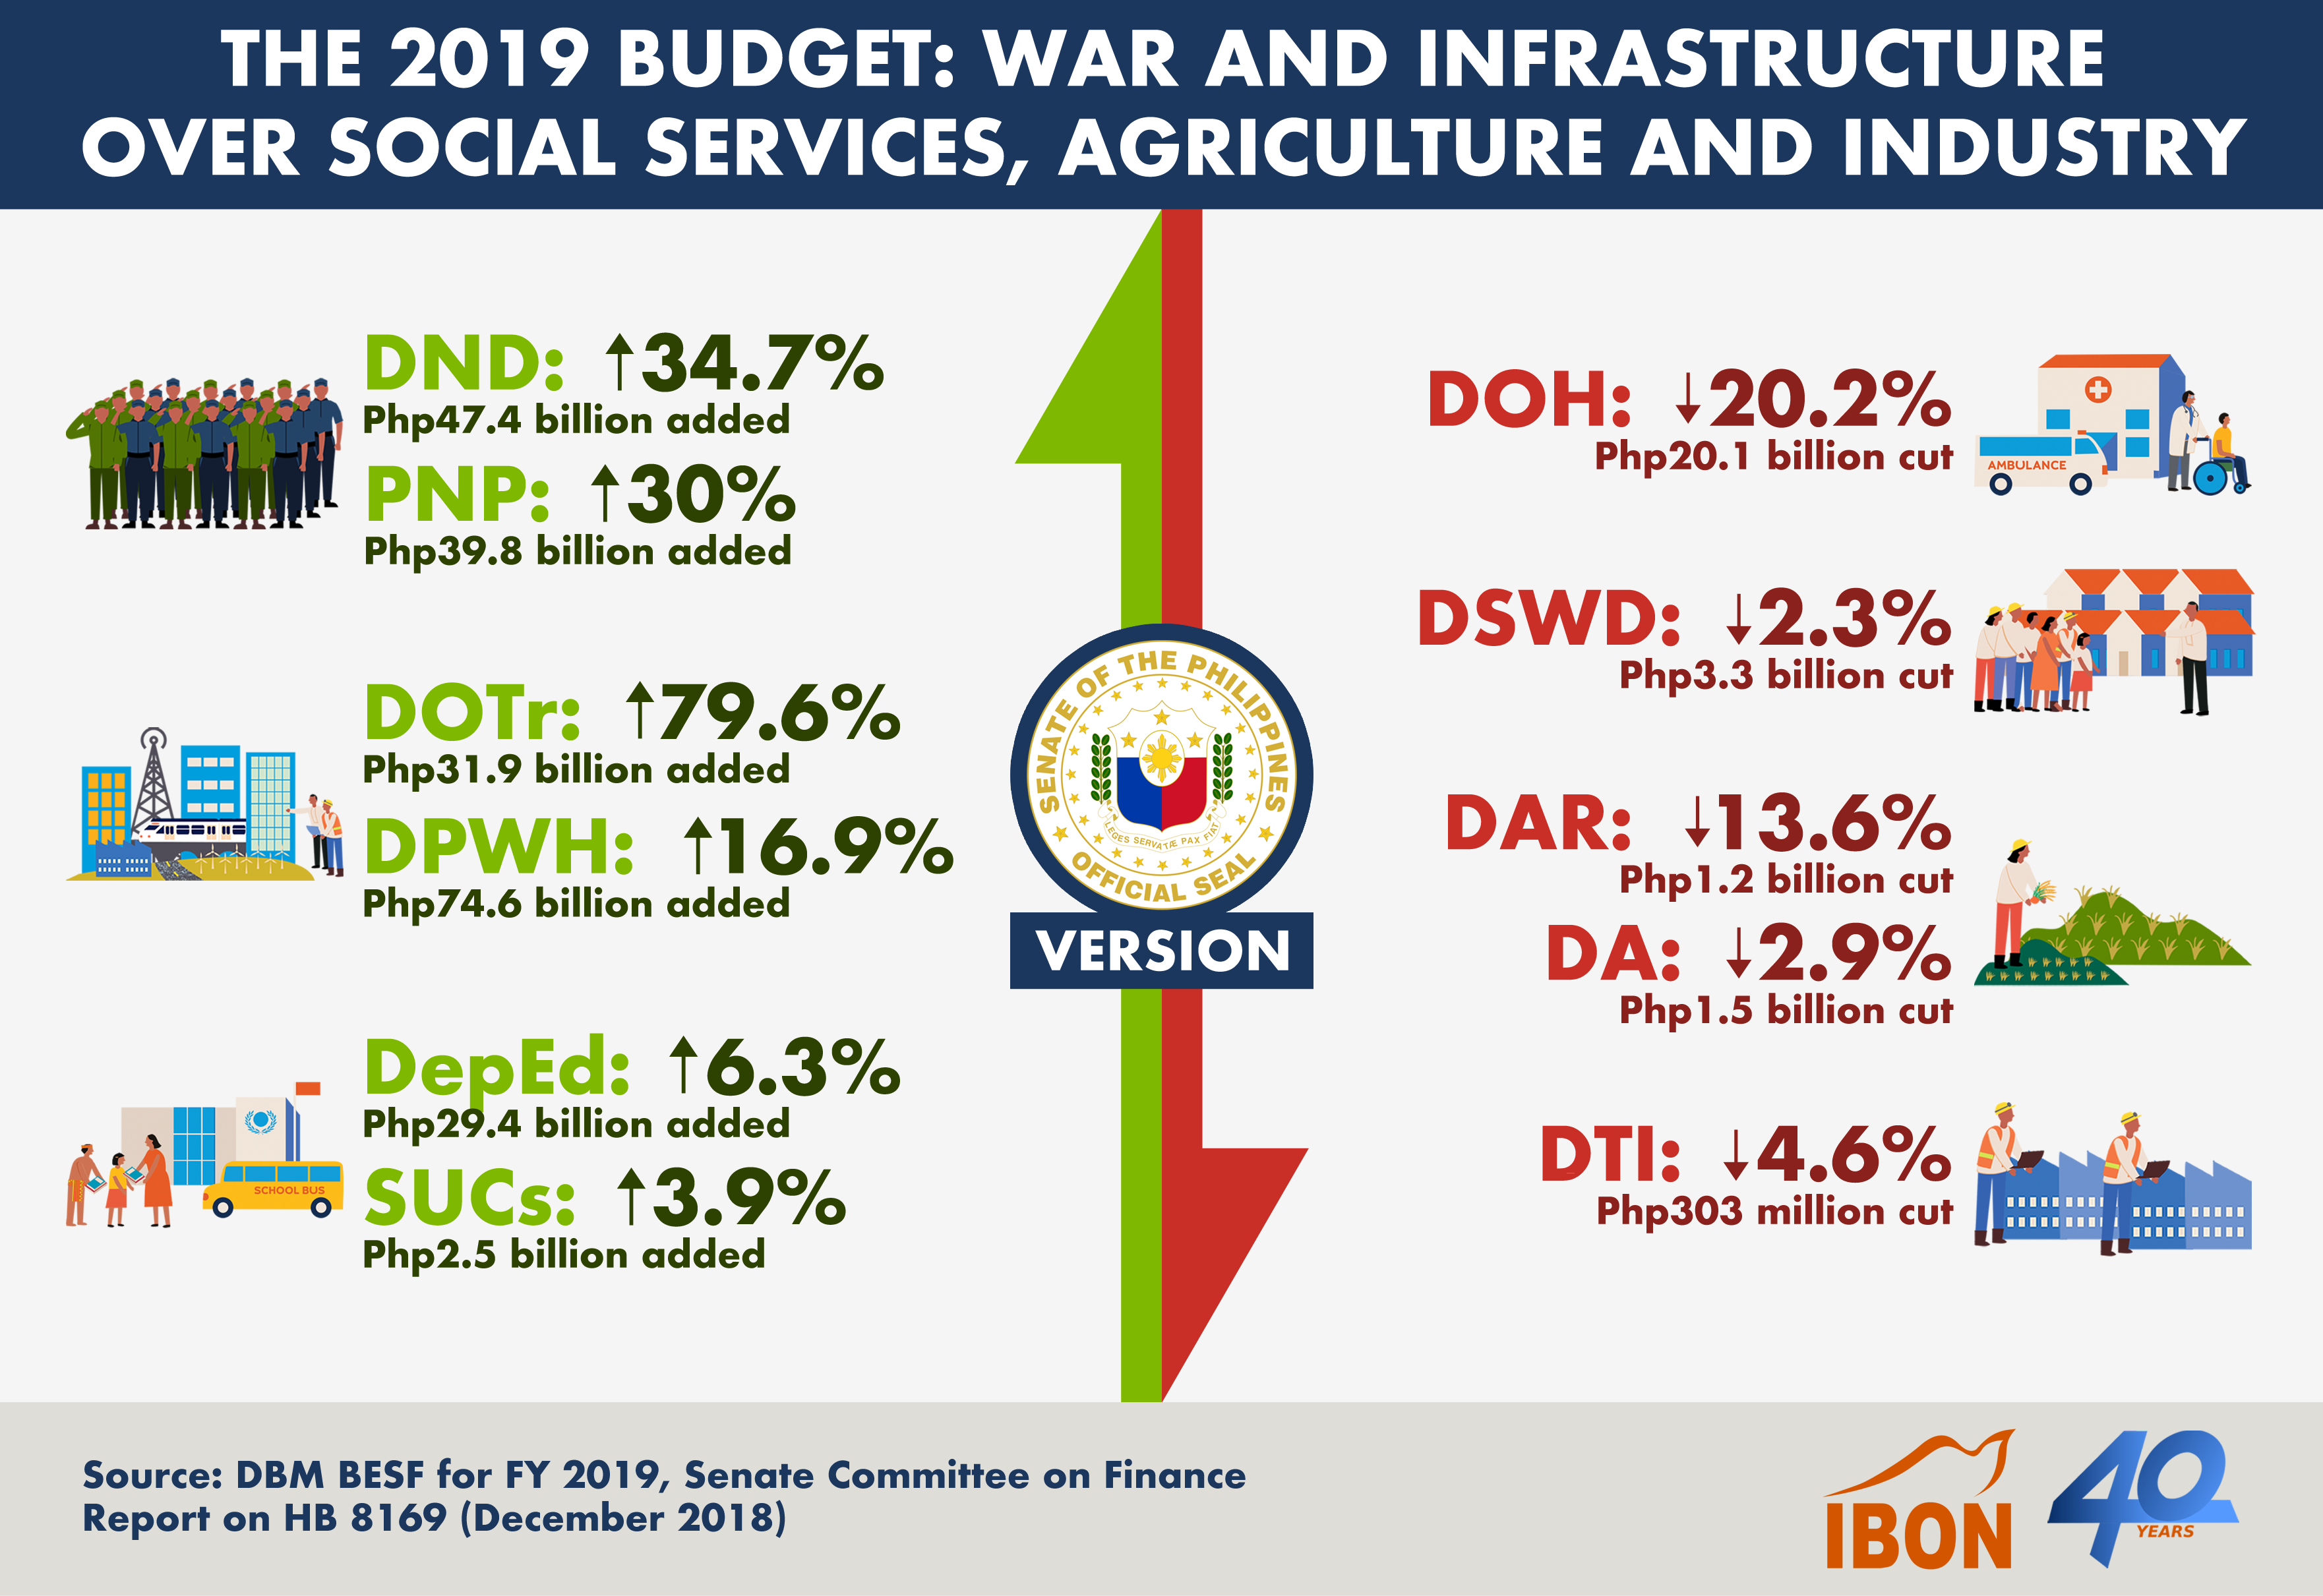 20192601 The 2019 Budget - Senate Version